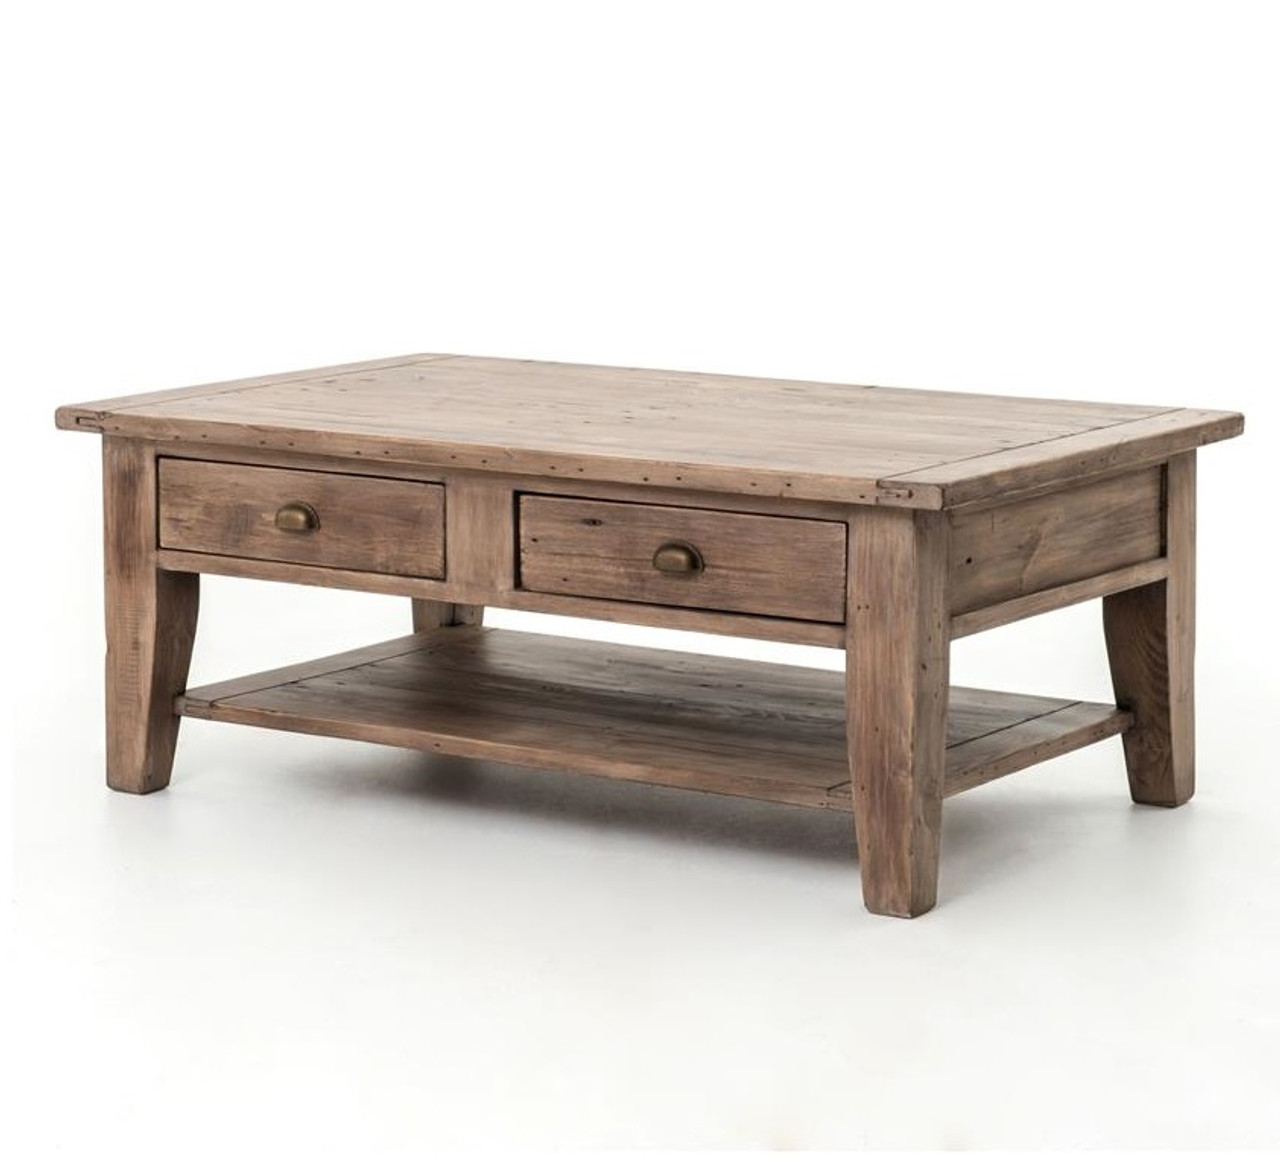 Coastal solid wood rustic coffee table with drawers zin home for Solid wood coffee table